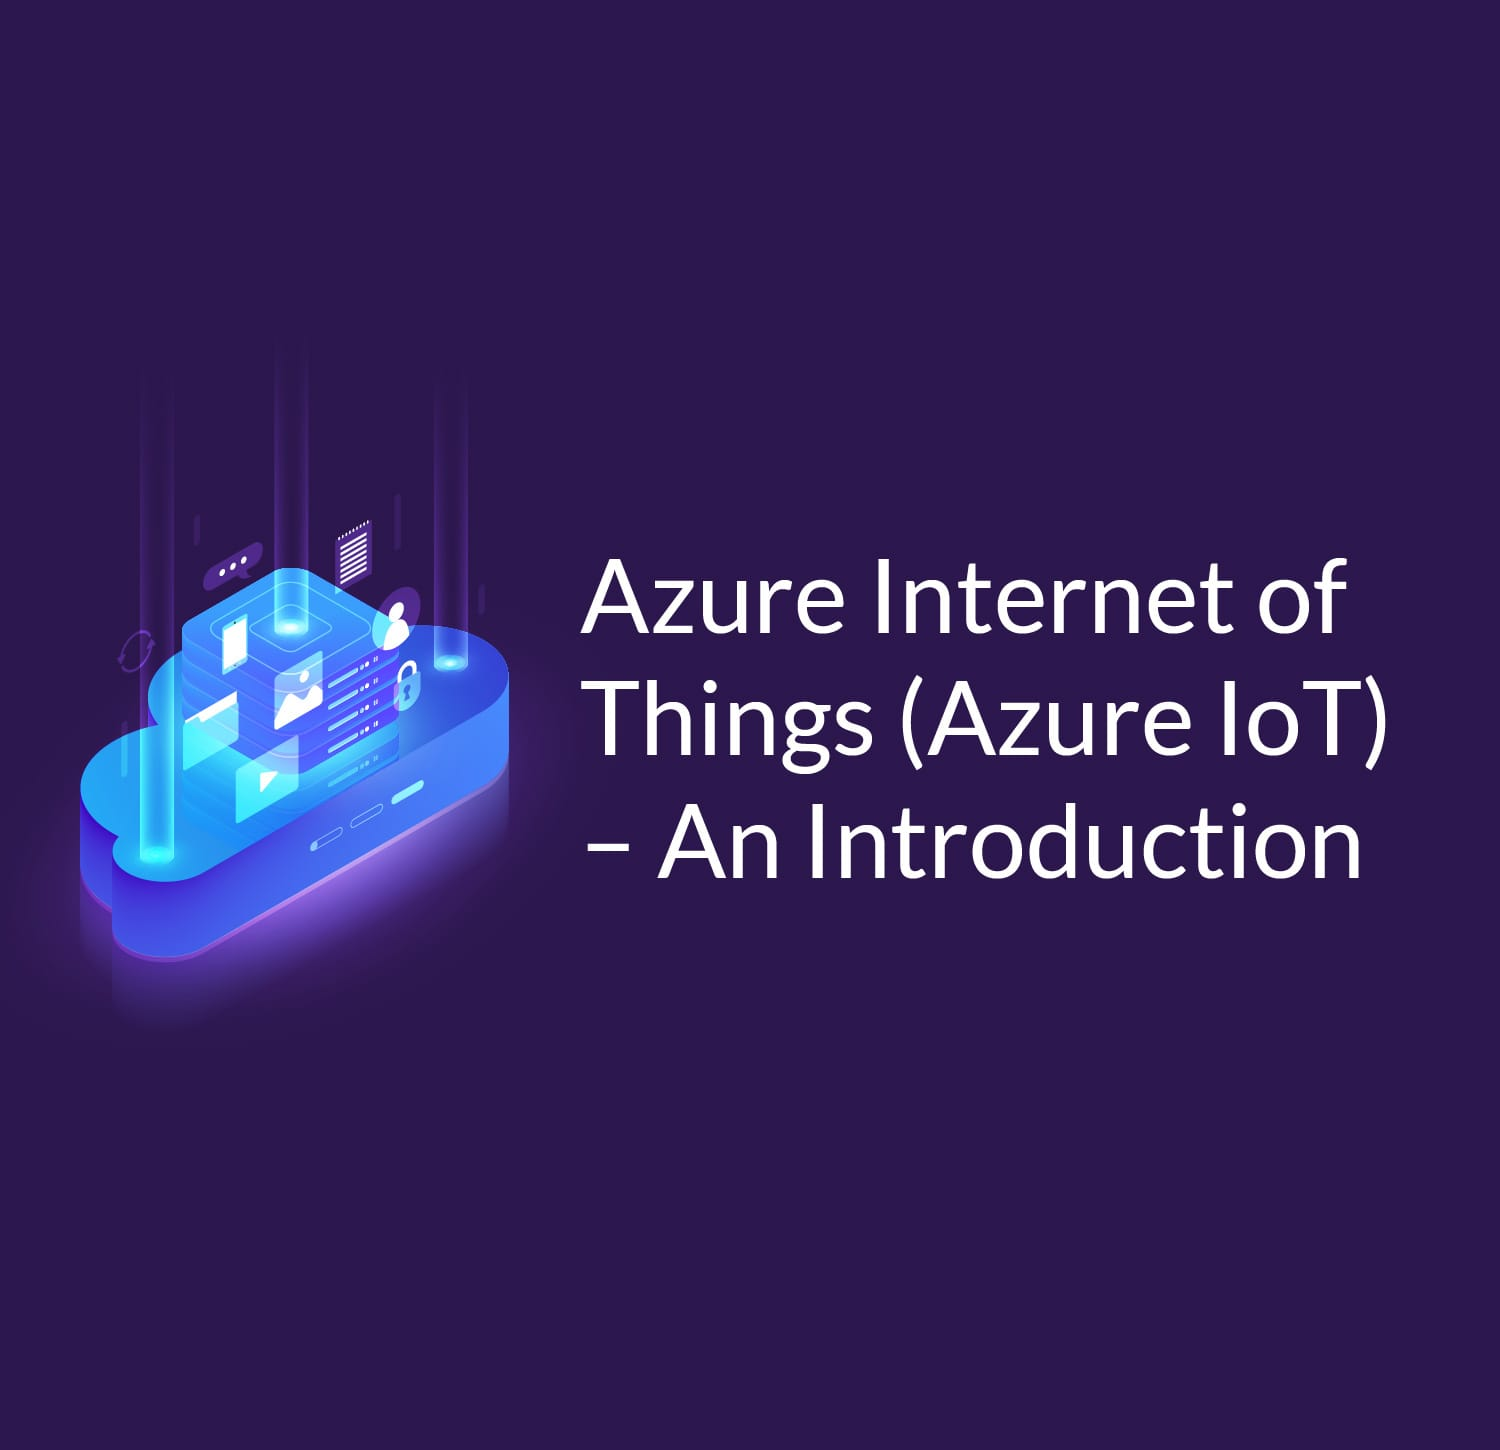 Azure Internet of Things (Azure IoT) - An Introduction